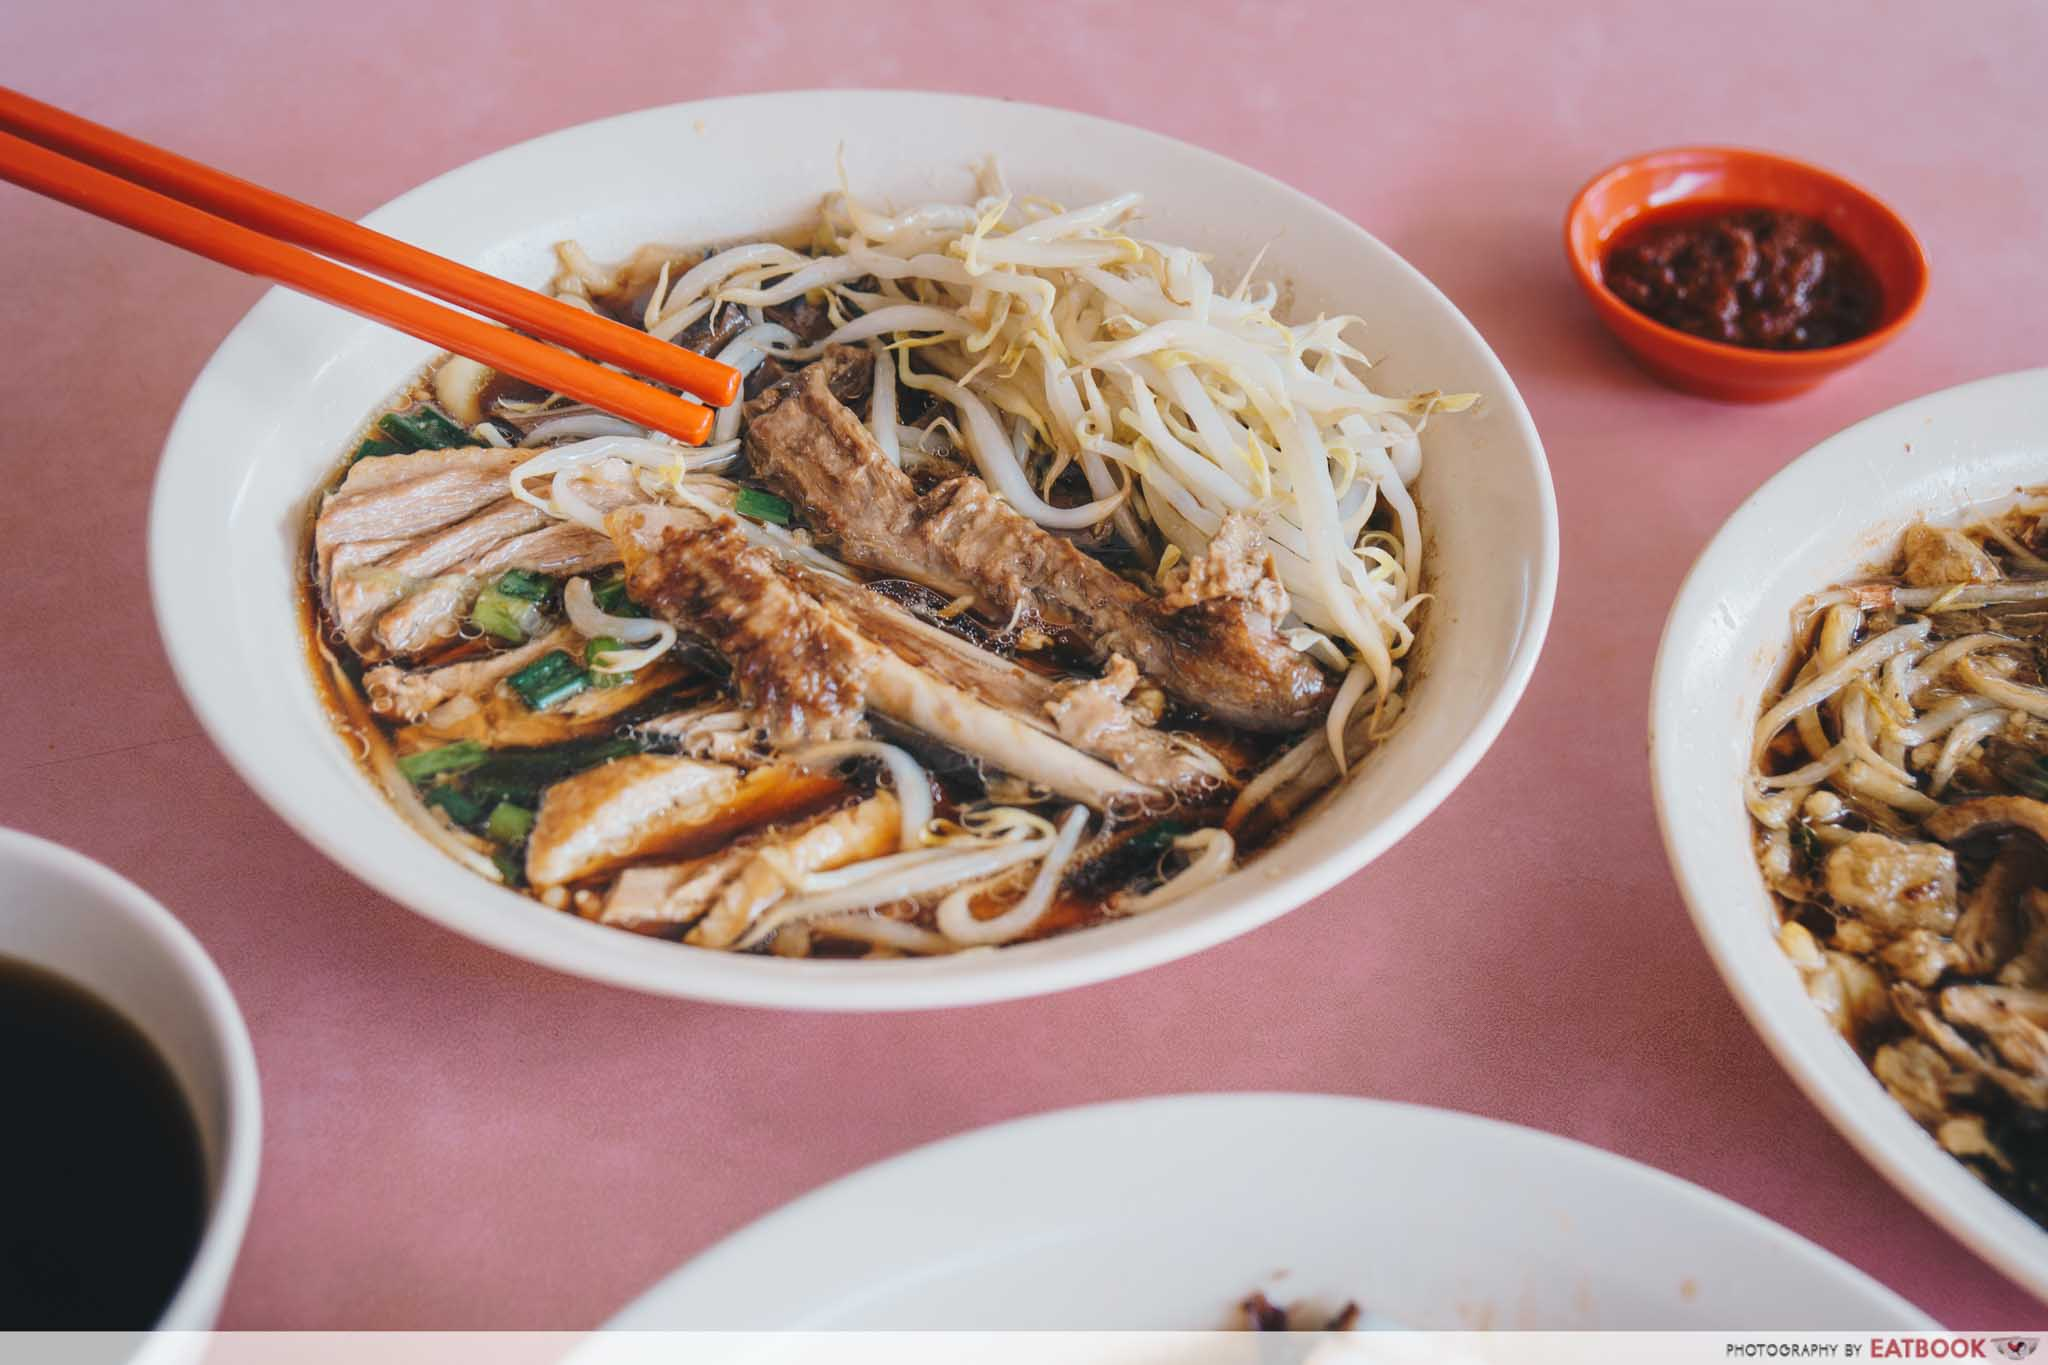 Heng Huat - Duck Noodles with soup, gizzard and duck wing